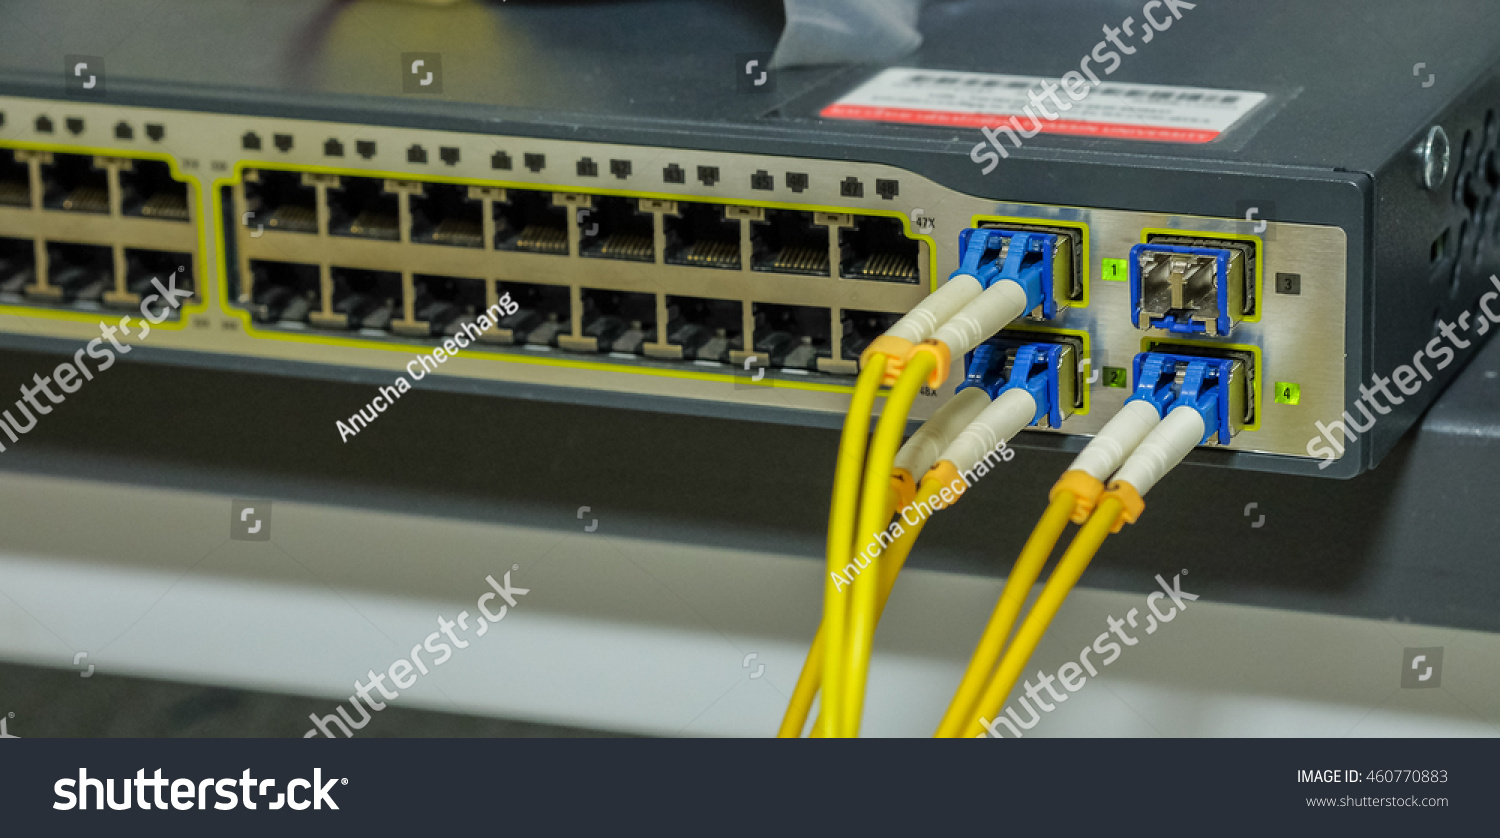 Port Module Fiber Optic Cable Connection Stock Photo Edit Now With Audio Transmission Electronic Circuits And Of For To Network Server Router Servers